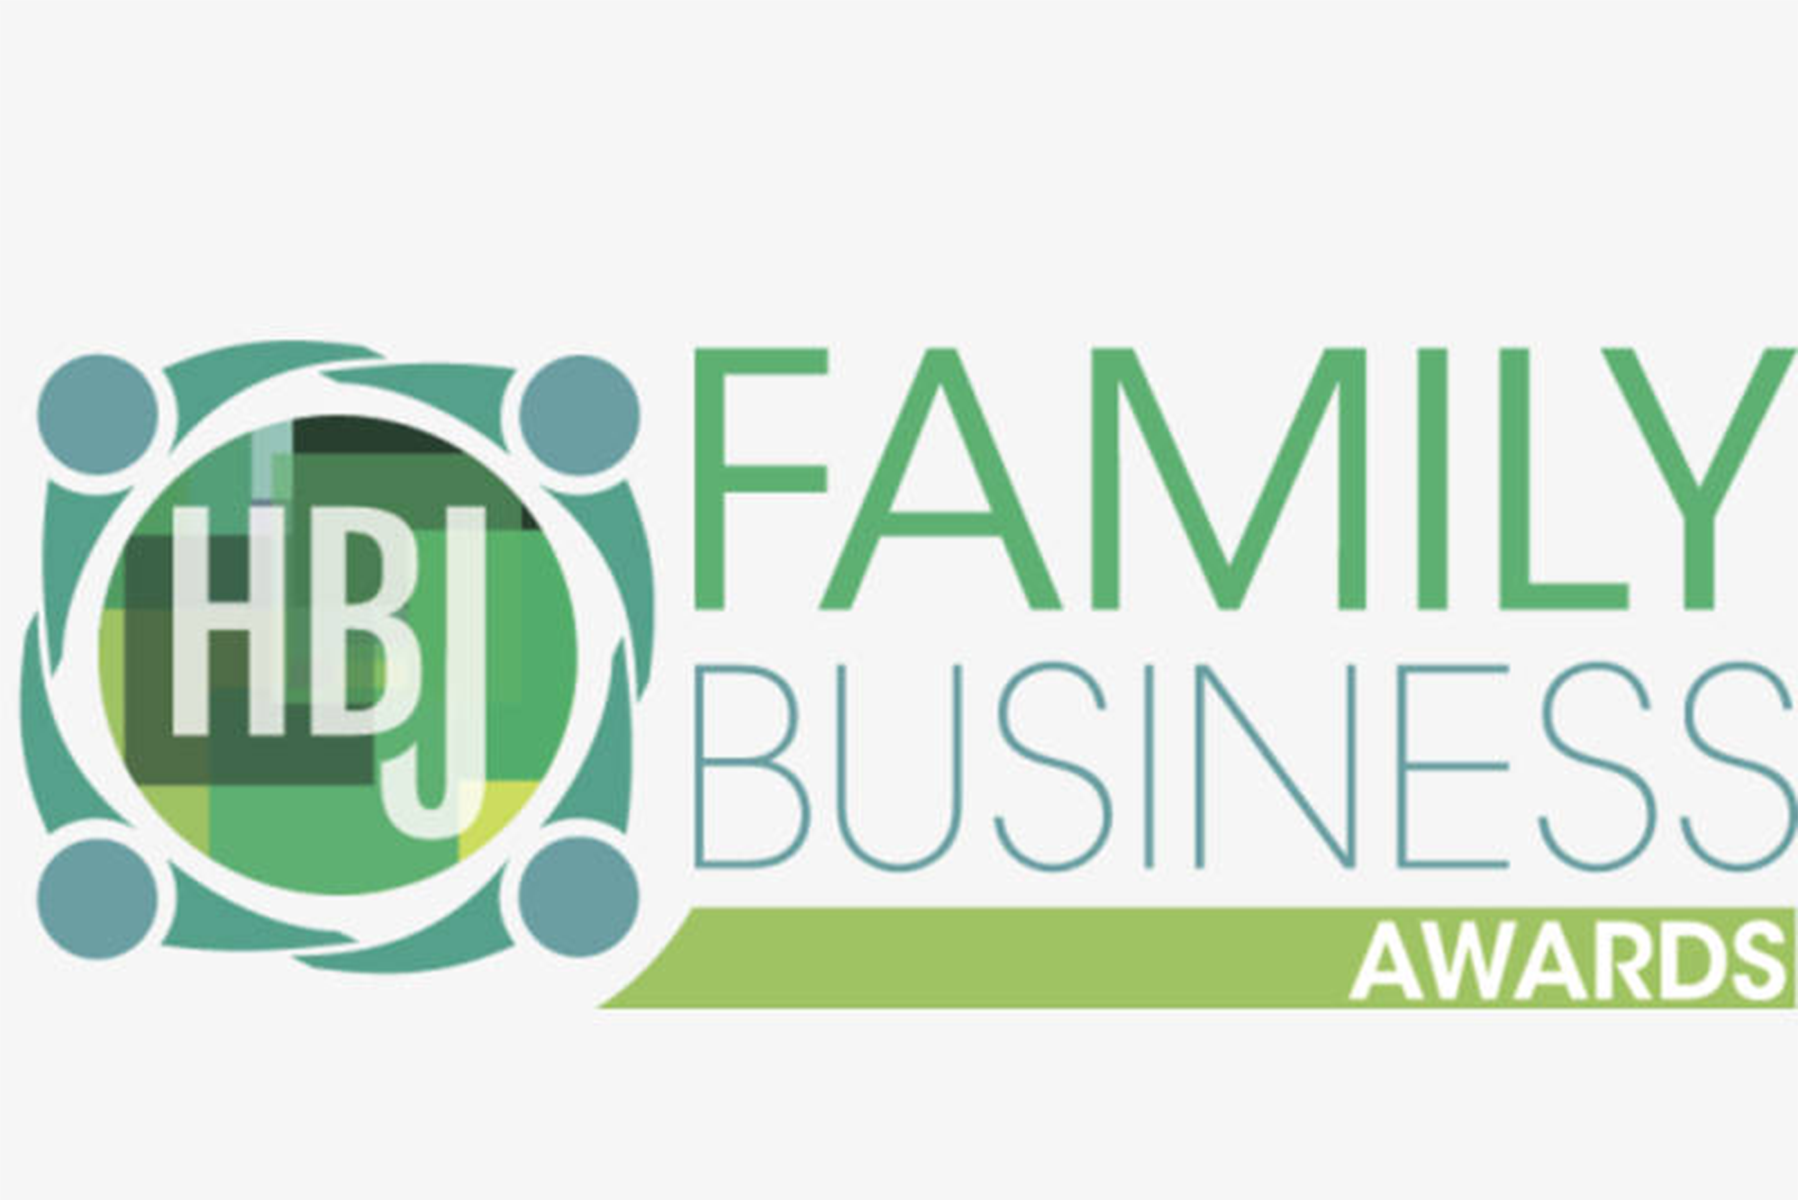 JWM Named Hartford Family Business Finalists - Hartford Business JournalOctober 17, 2018